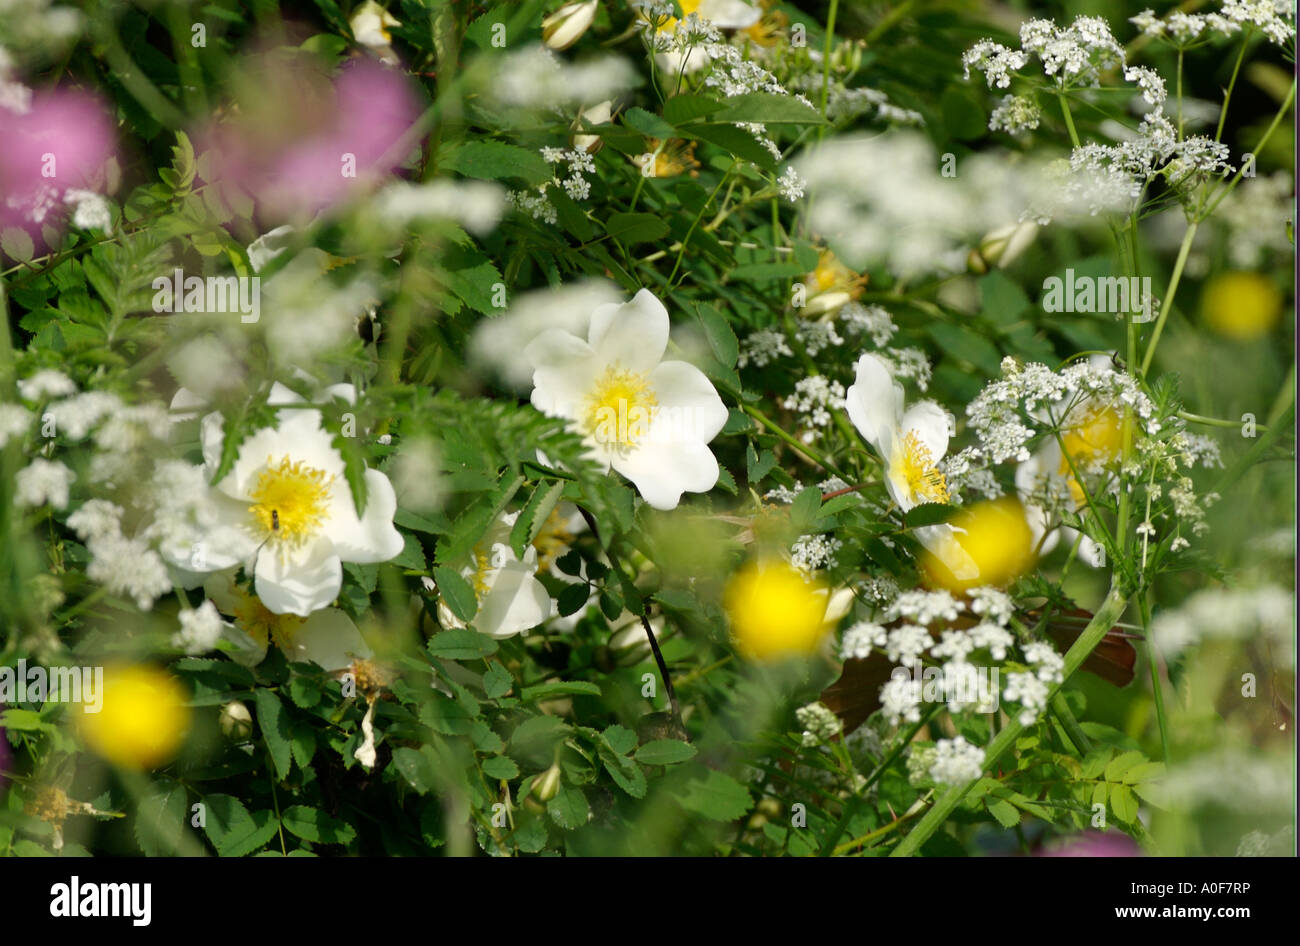 Hedgerows Spring Flowers Stock Photos Hedgerows Spring Flowers